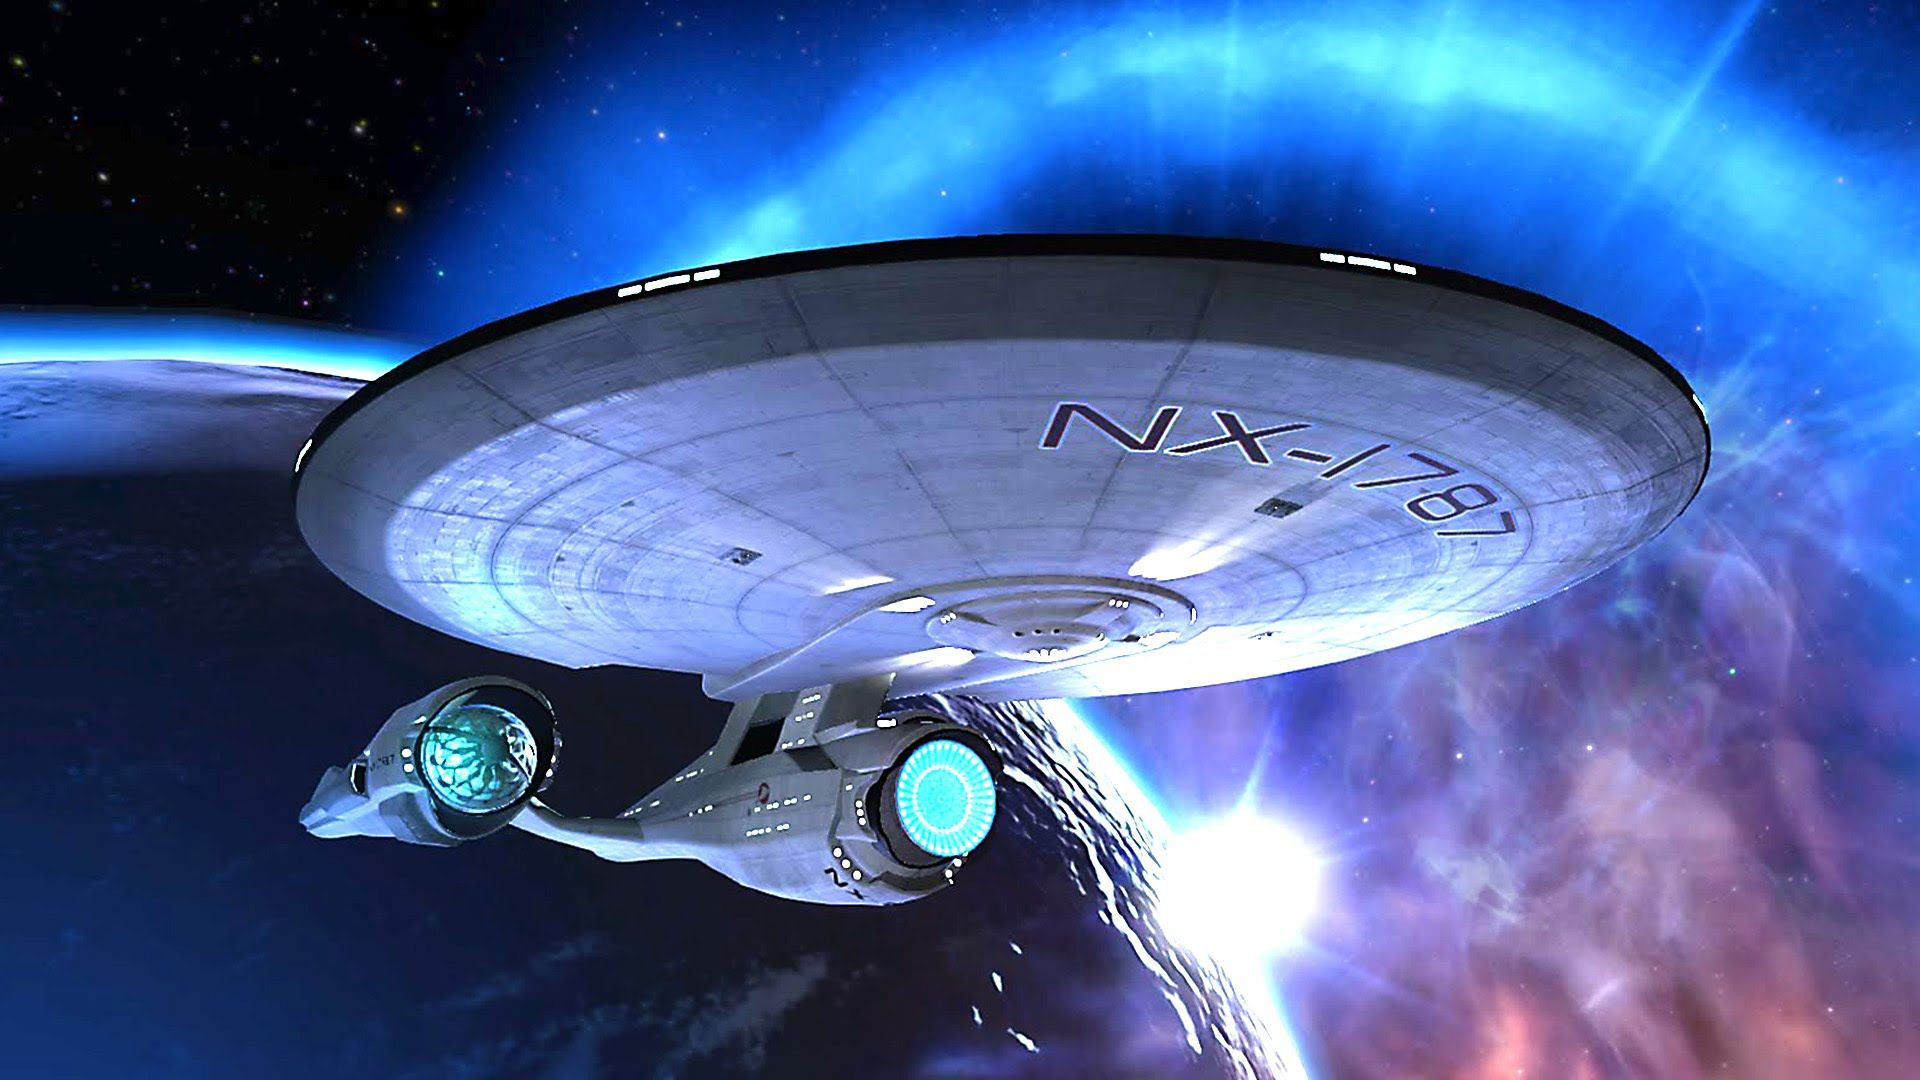 Live Wallpaper Hd Star Trek Wallpaper Star Trek Star Trek Bridge